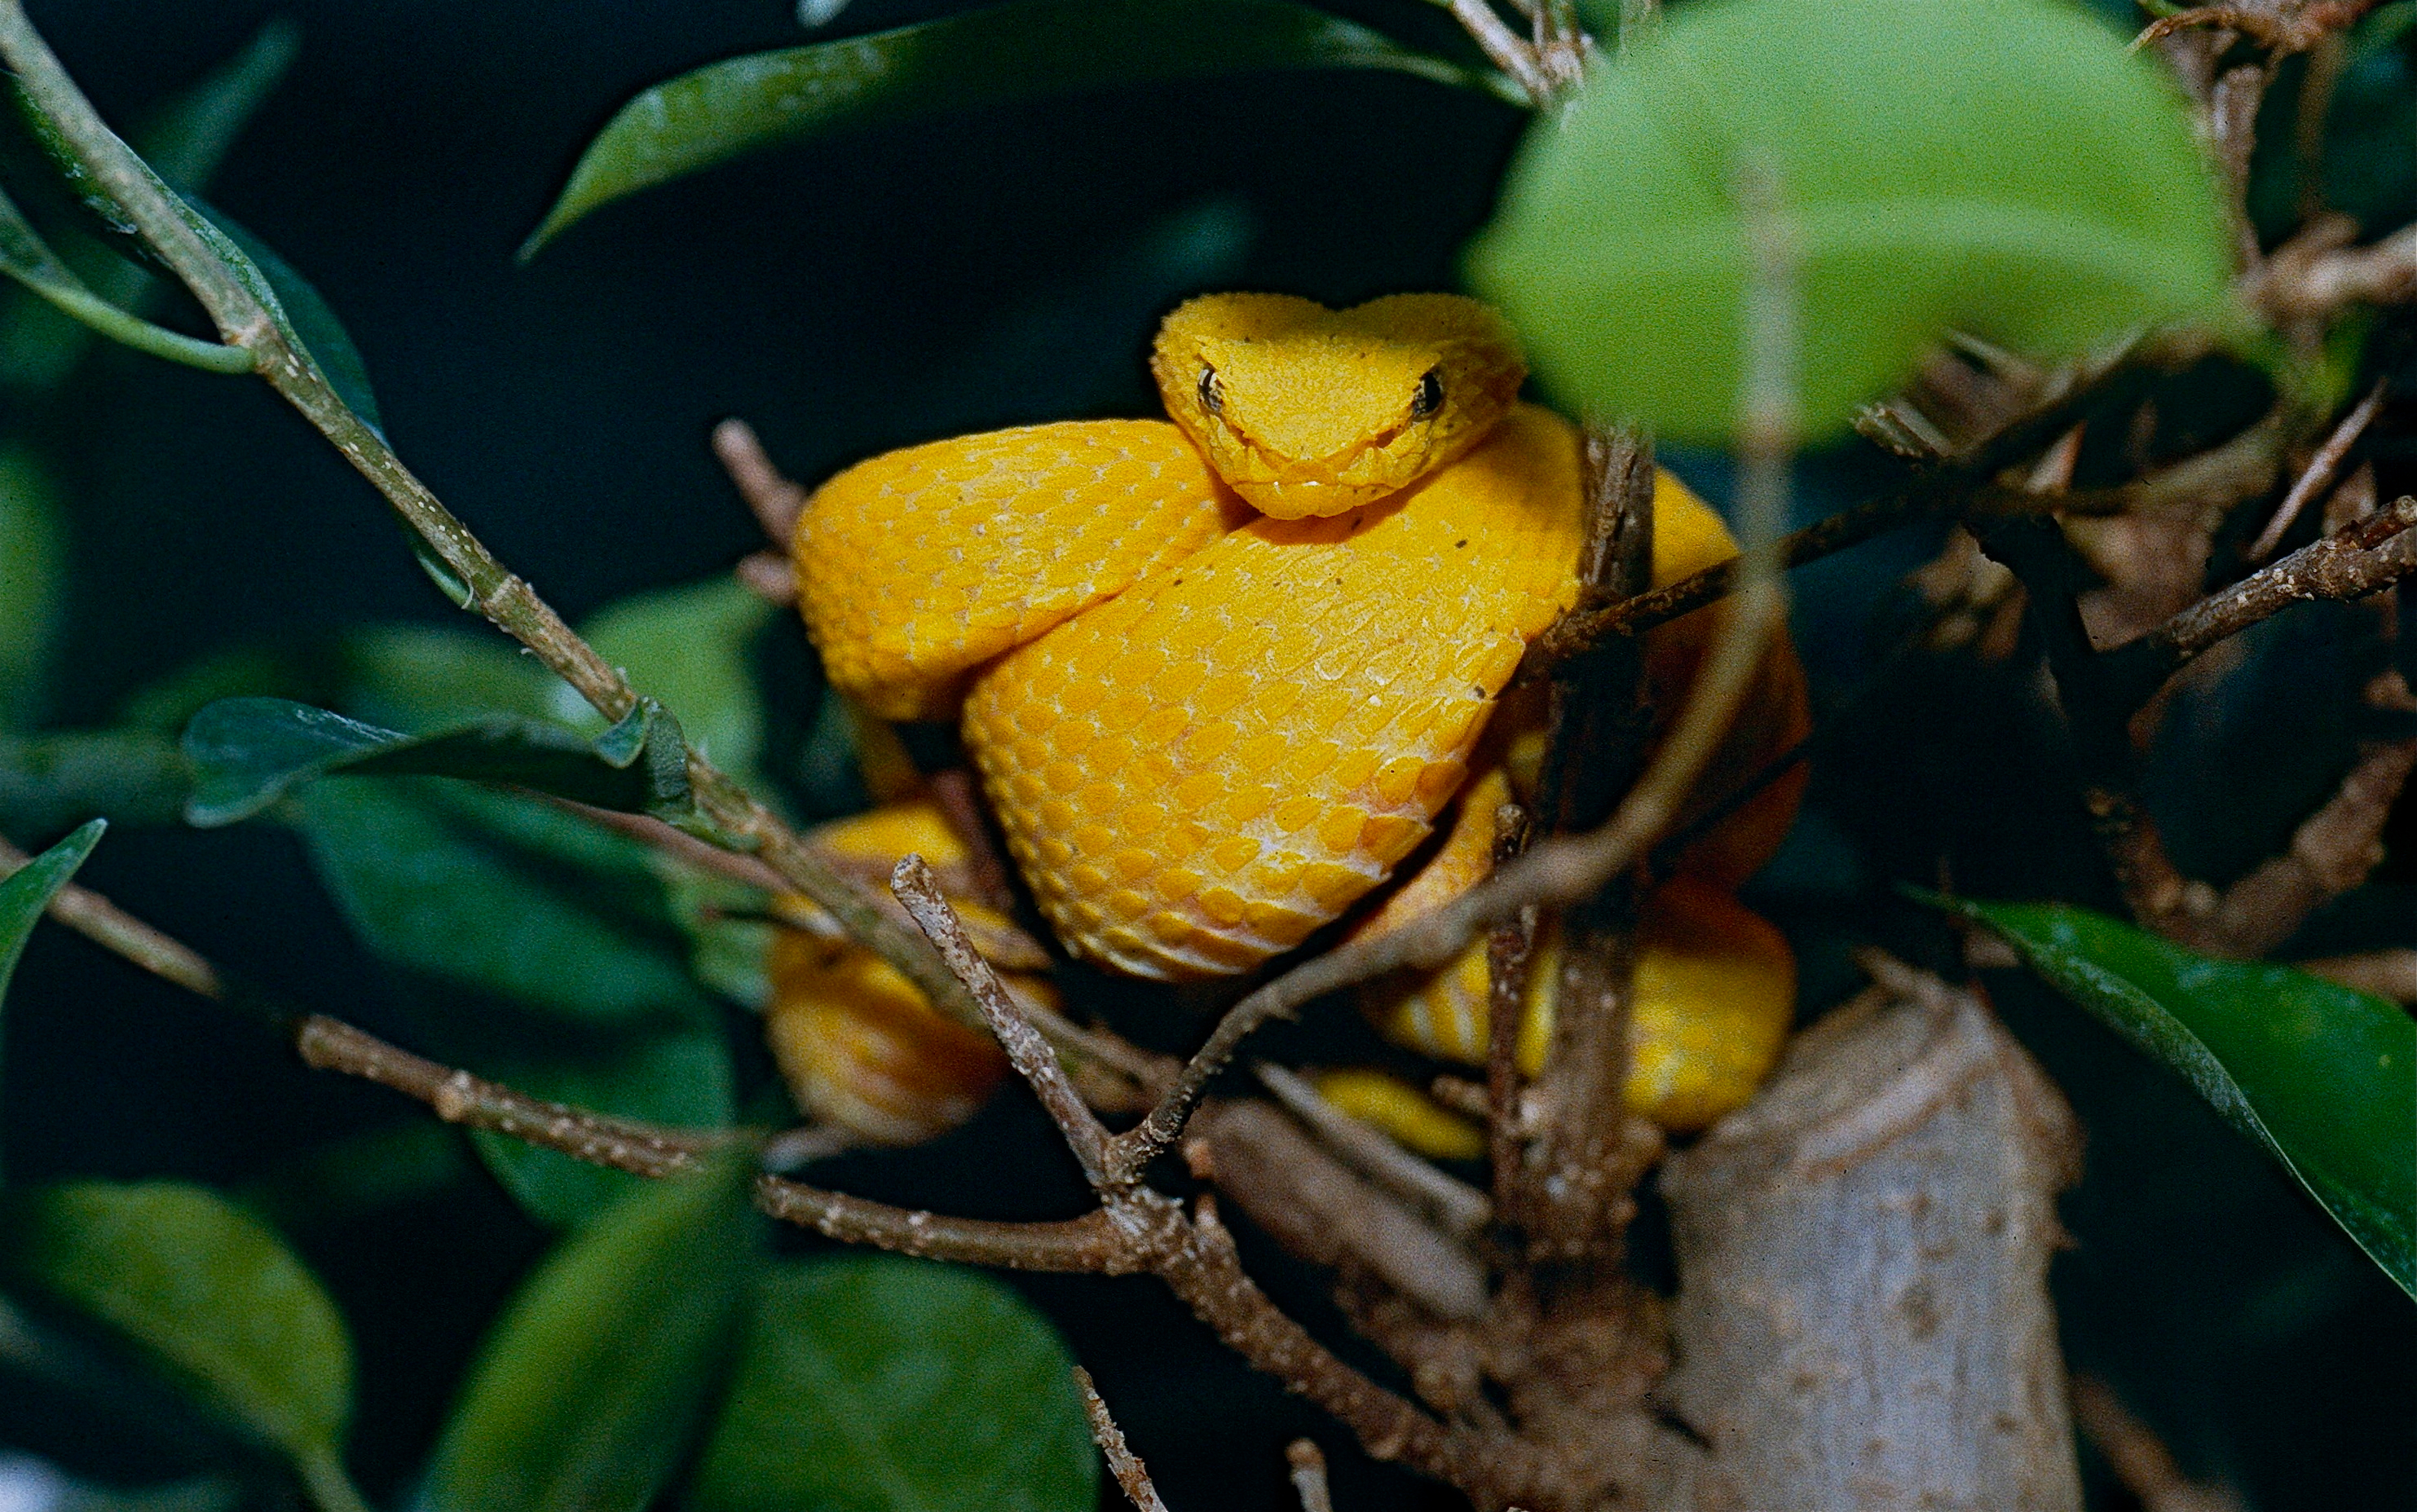 Fileeyelash Viper Bothriechis Schlegelii Oropel Phase